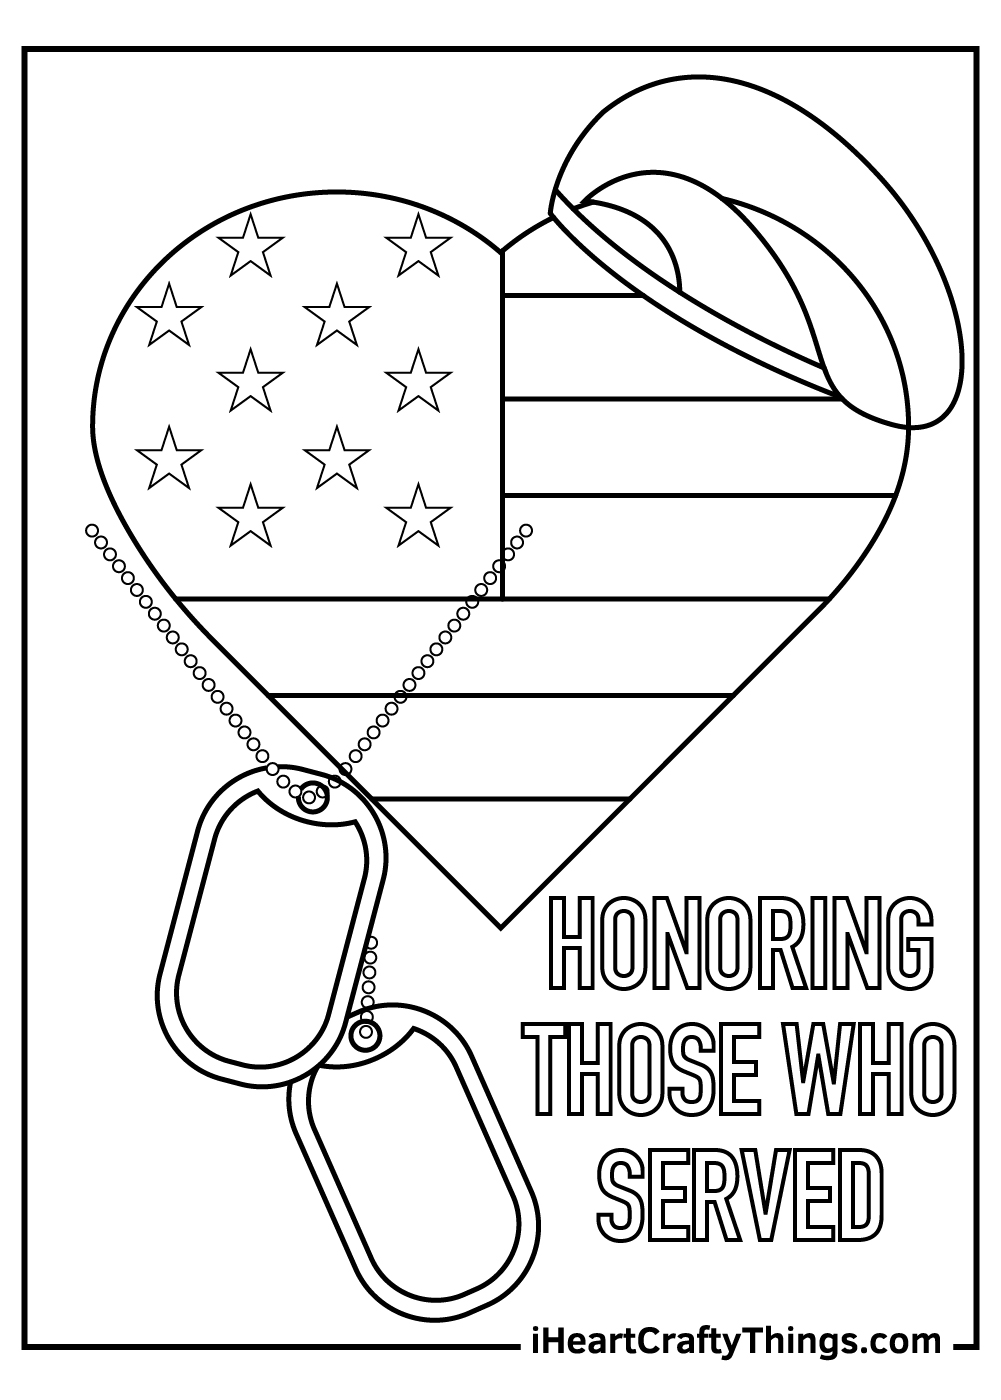 Honoring Those Who Served Veteran's Day Coloring Pages